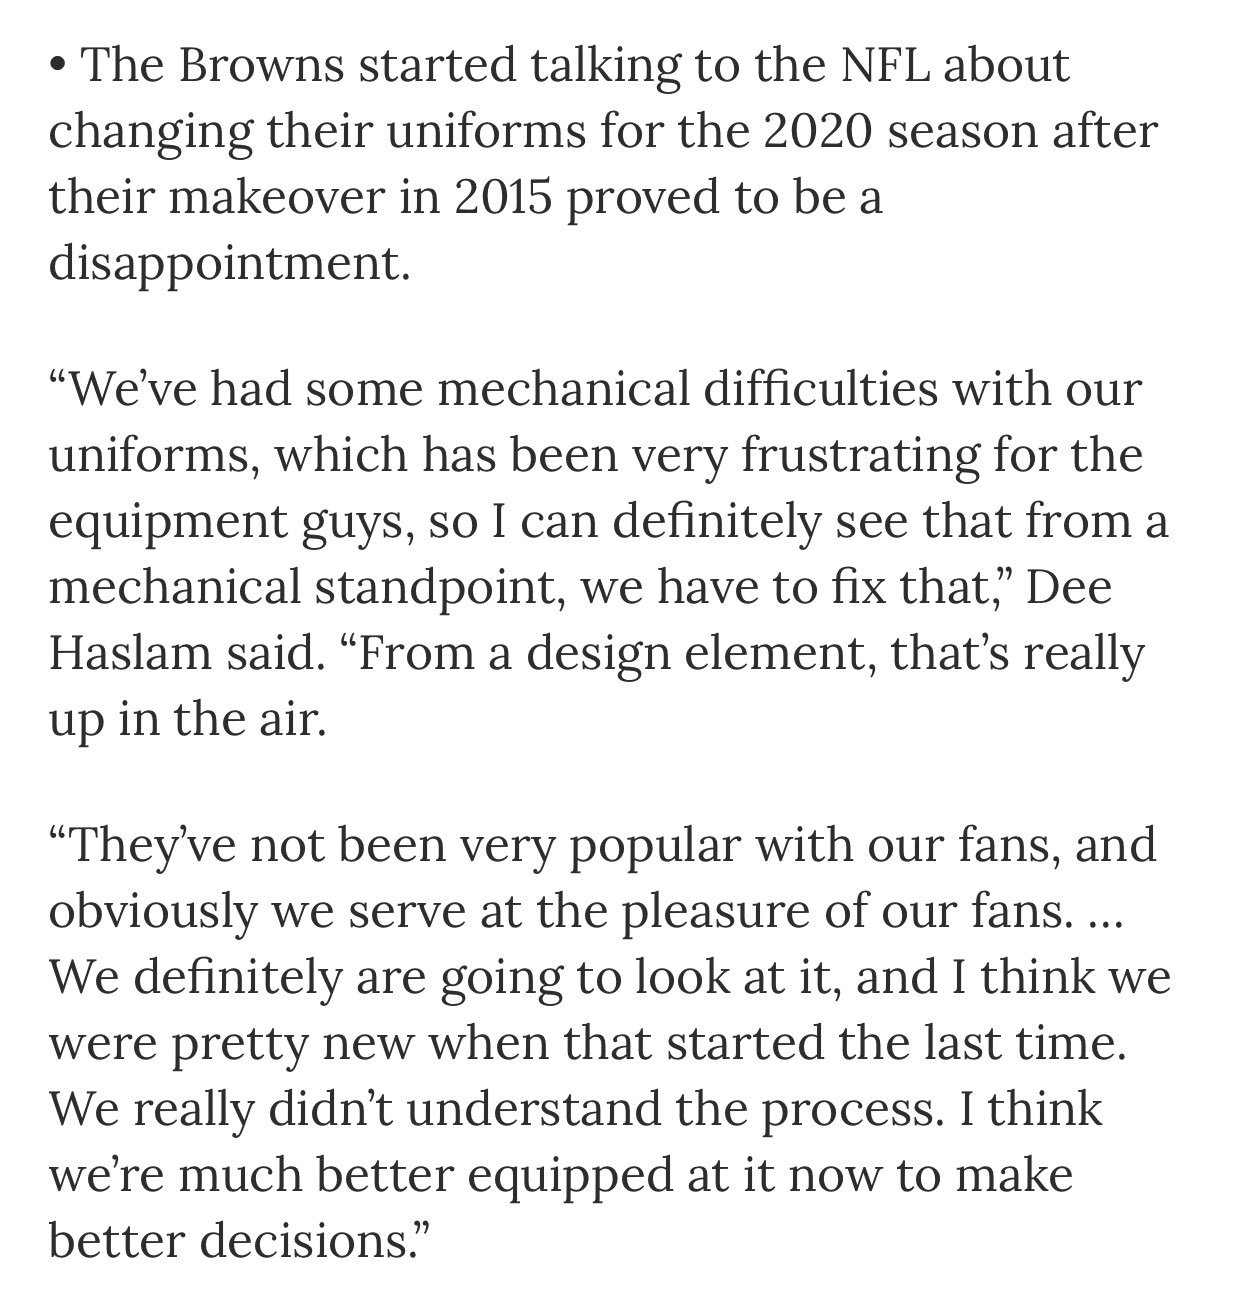 Dee Haslam quote on the rumored 2020 uniform changes   Browns dd15756b2